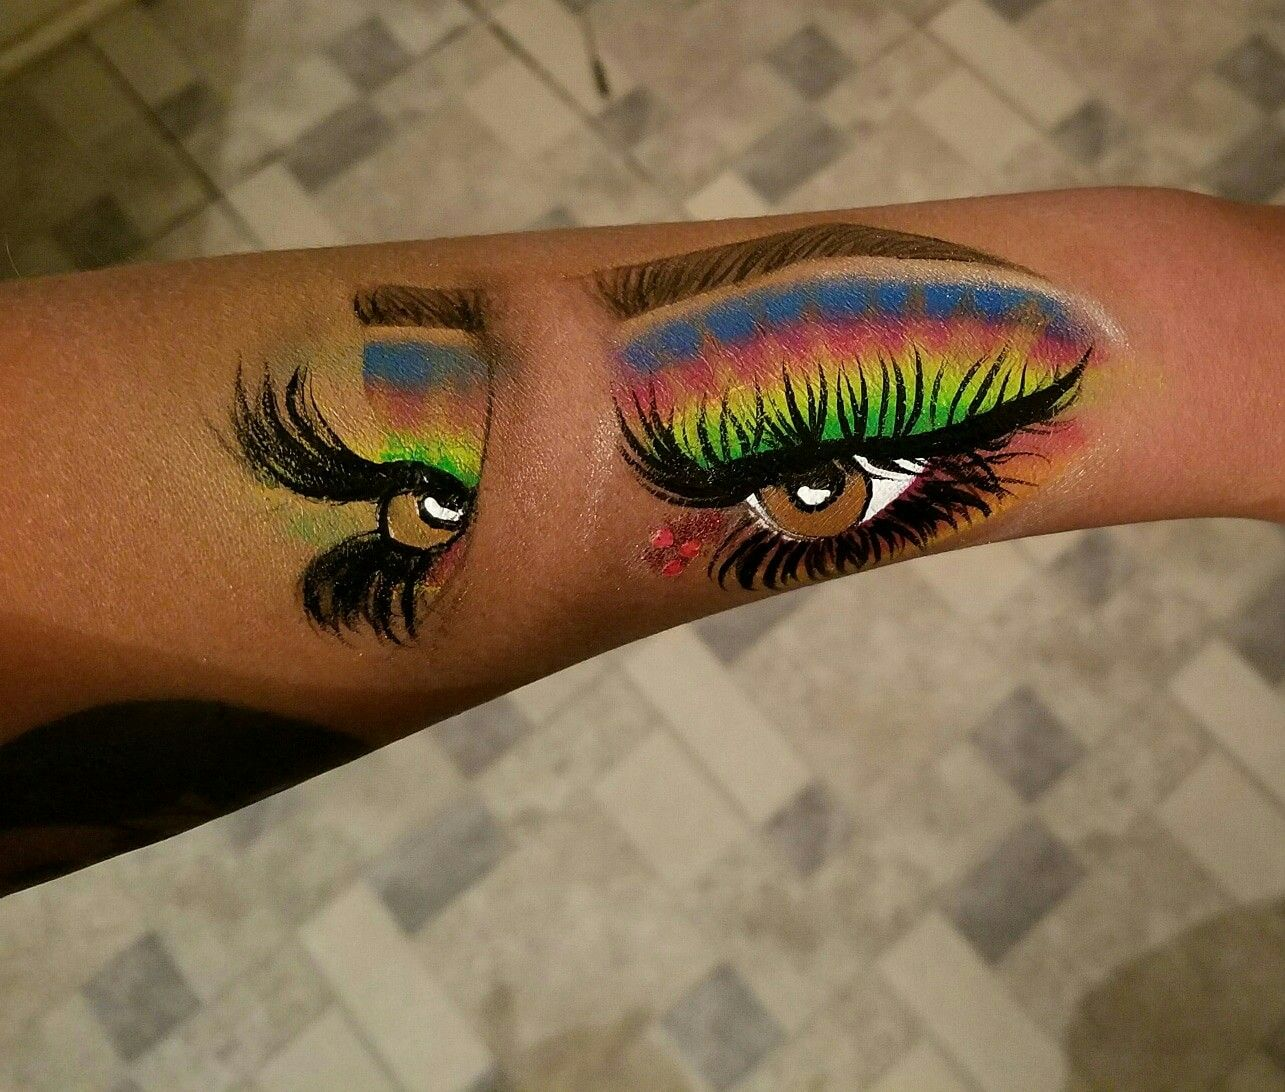 Makeup application I did on my arm😄 How to apply makeup